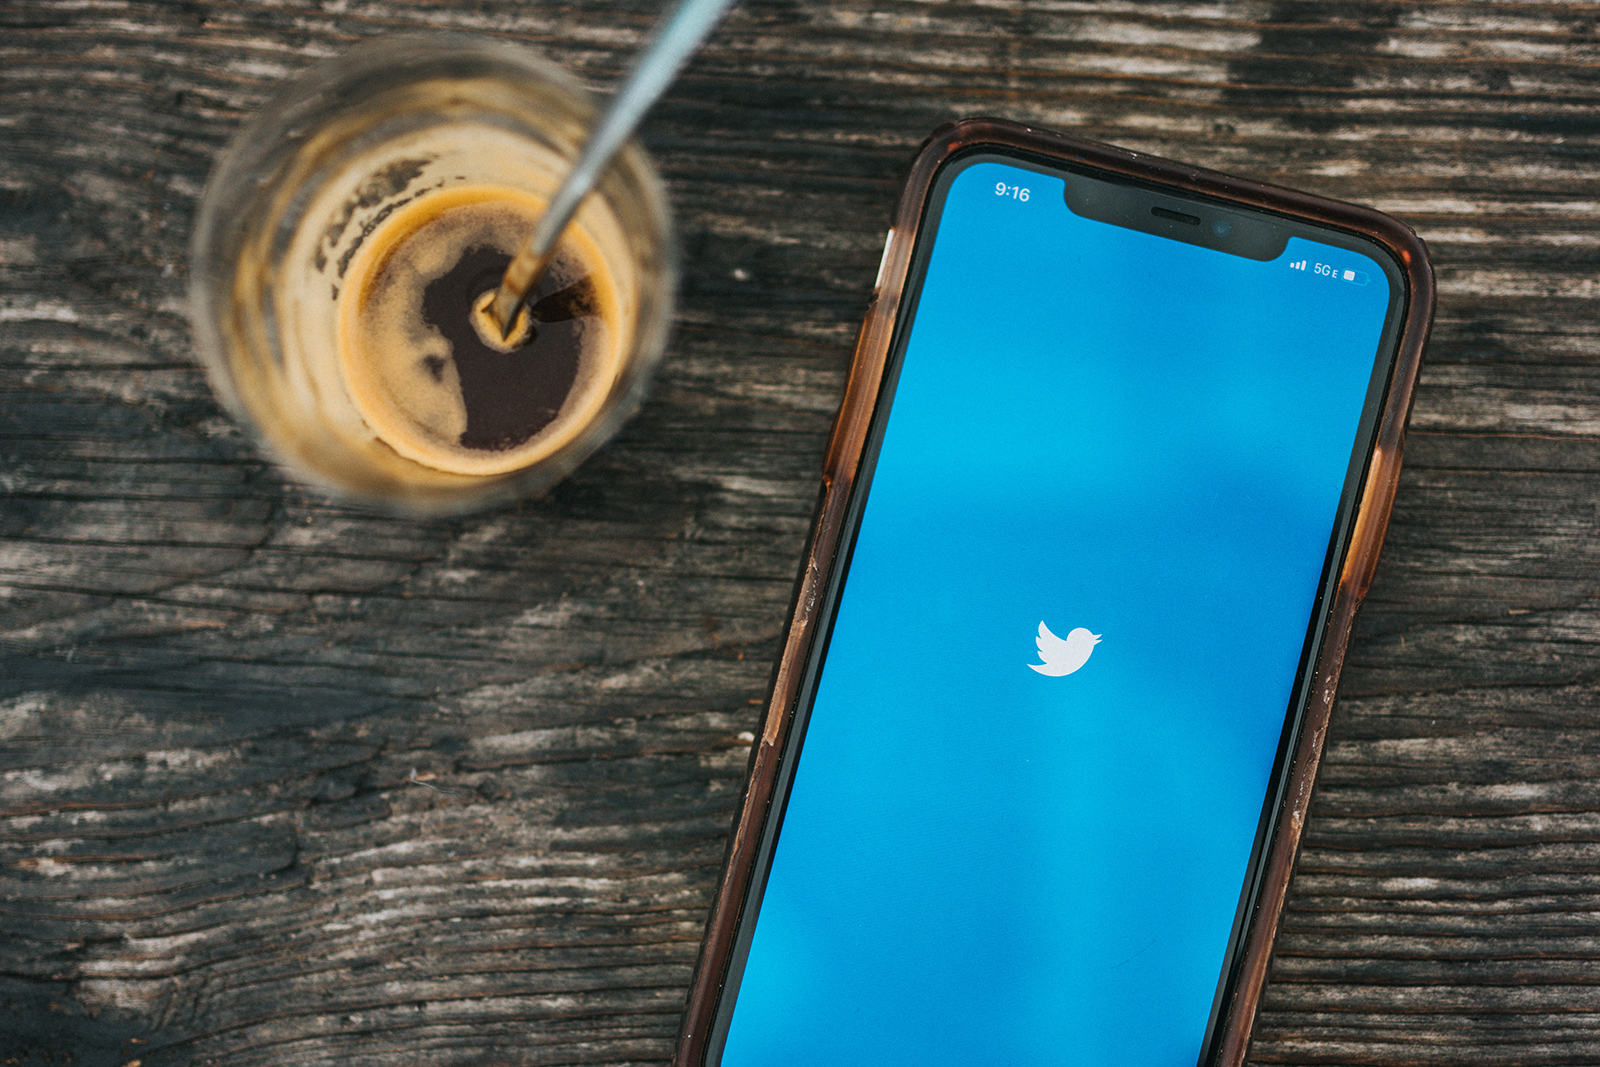 Twitter's subscription service might cost $3 per month